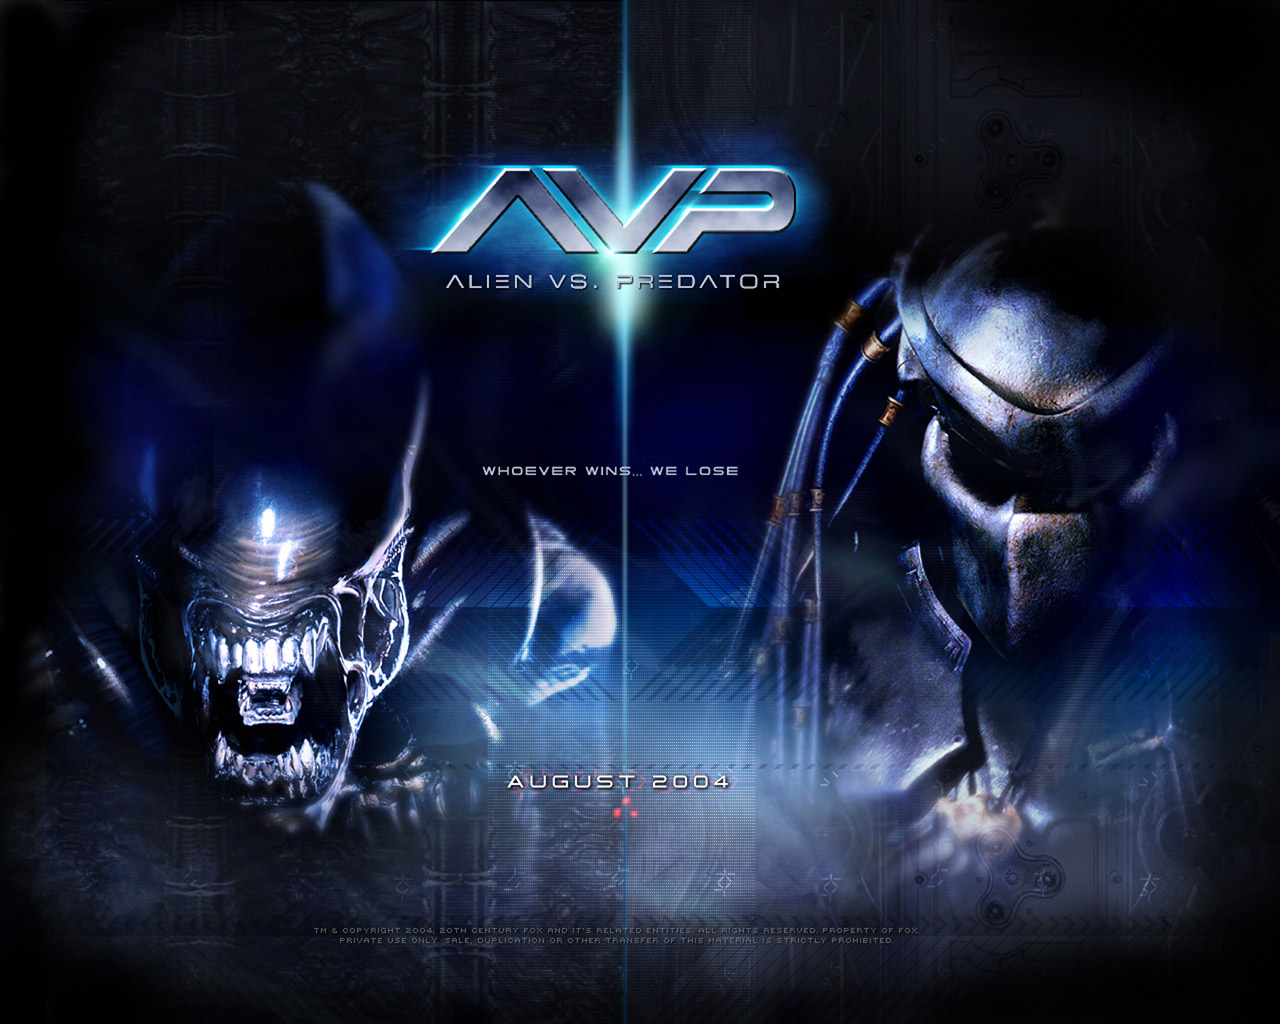 HD Wallpaper of Avp Alien Vs Predator, Desktop Wallpaper Avp Alien Vs Predator